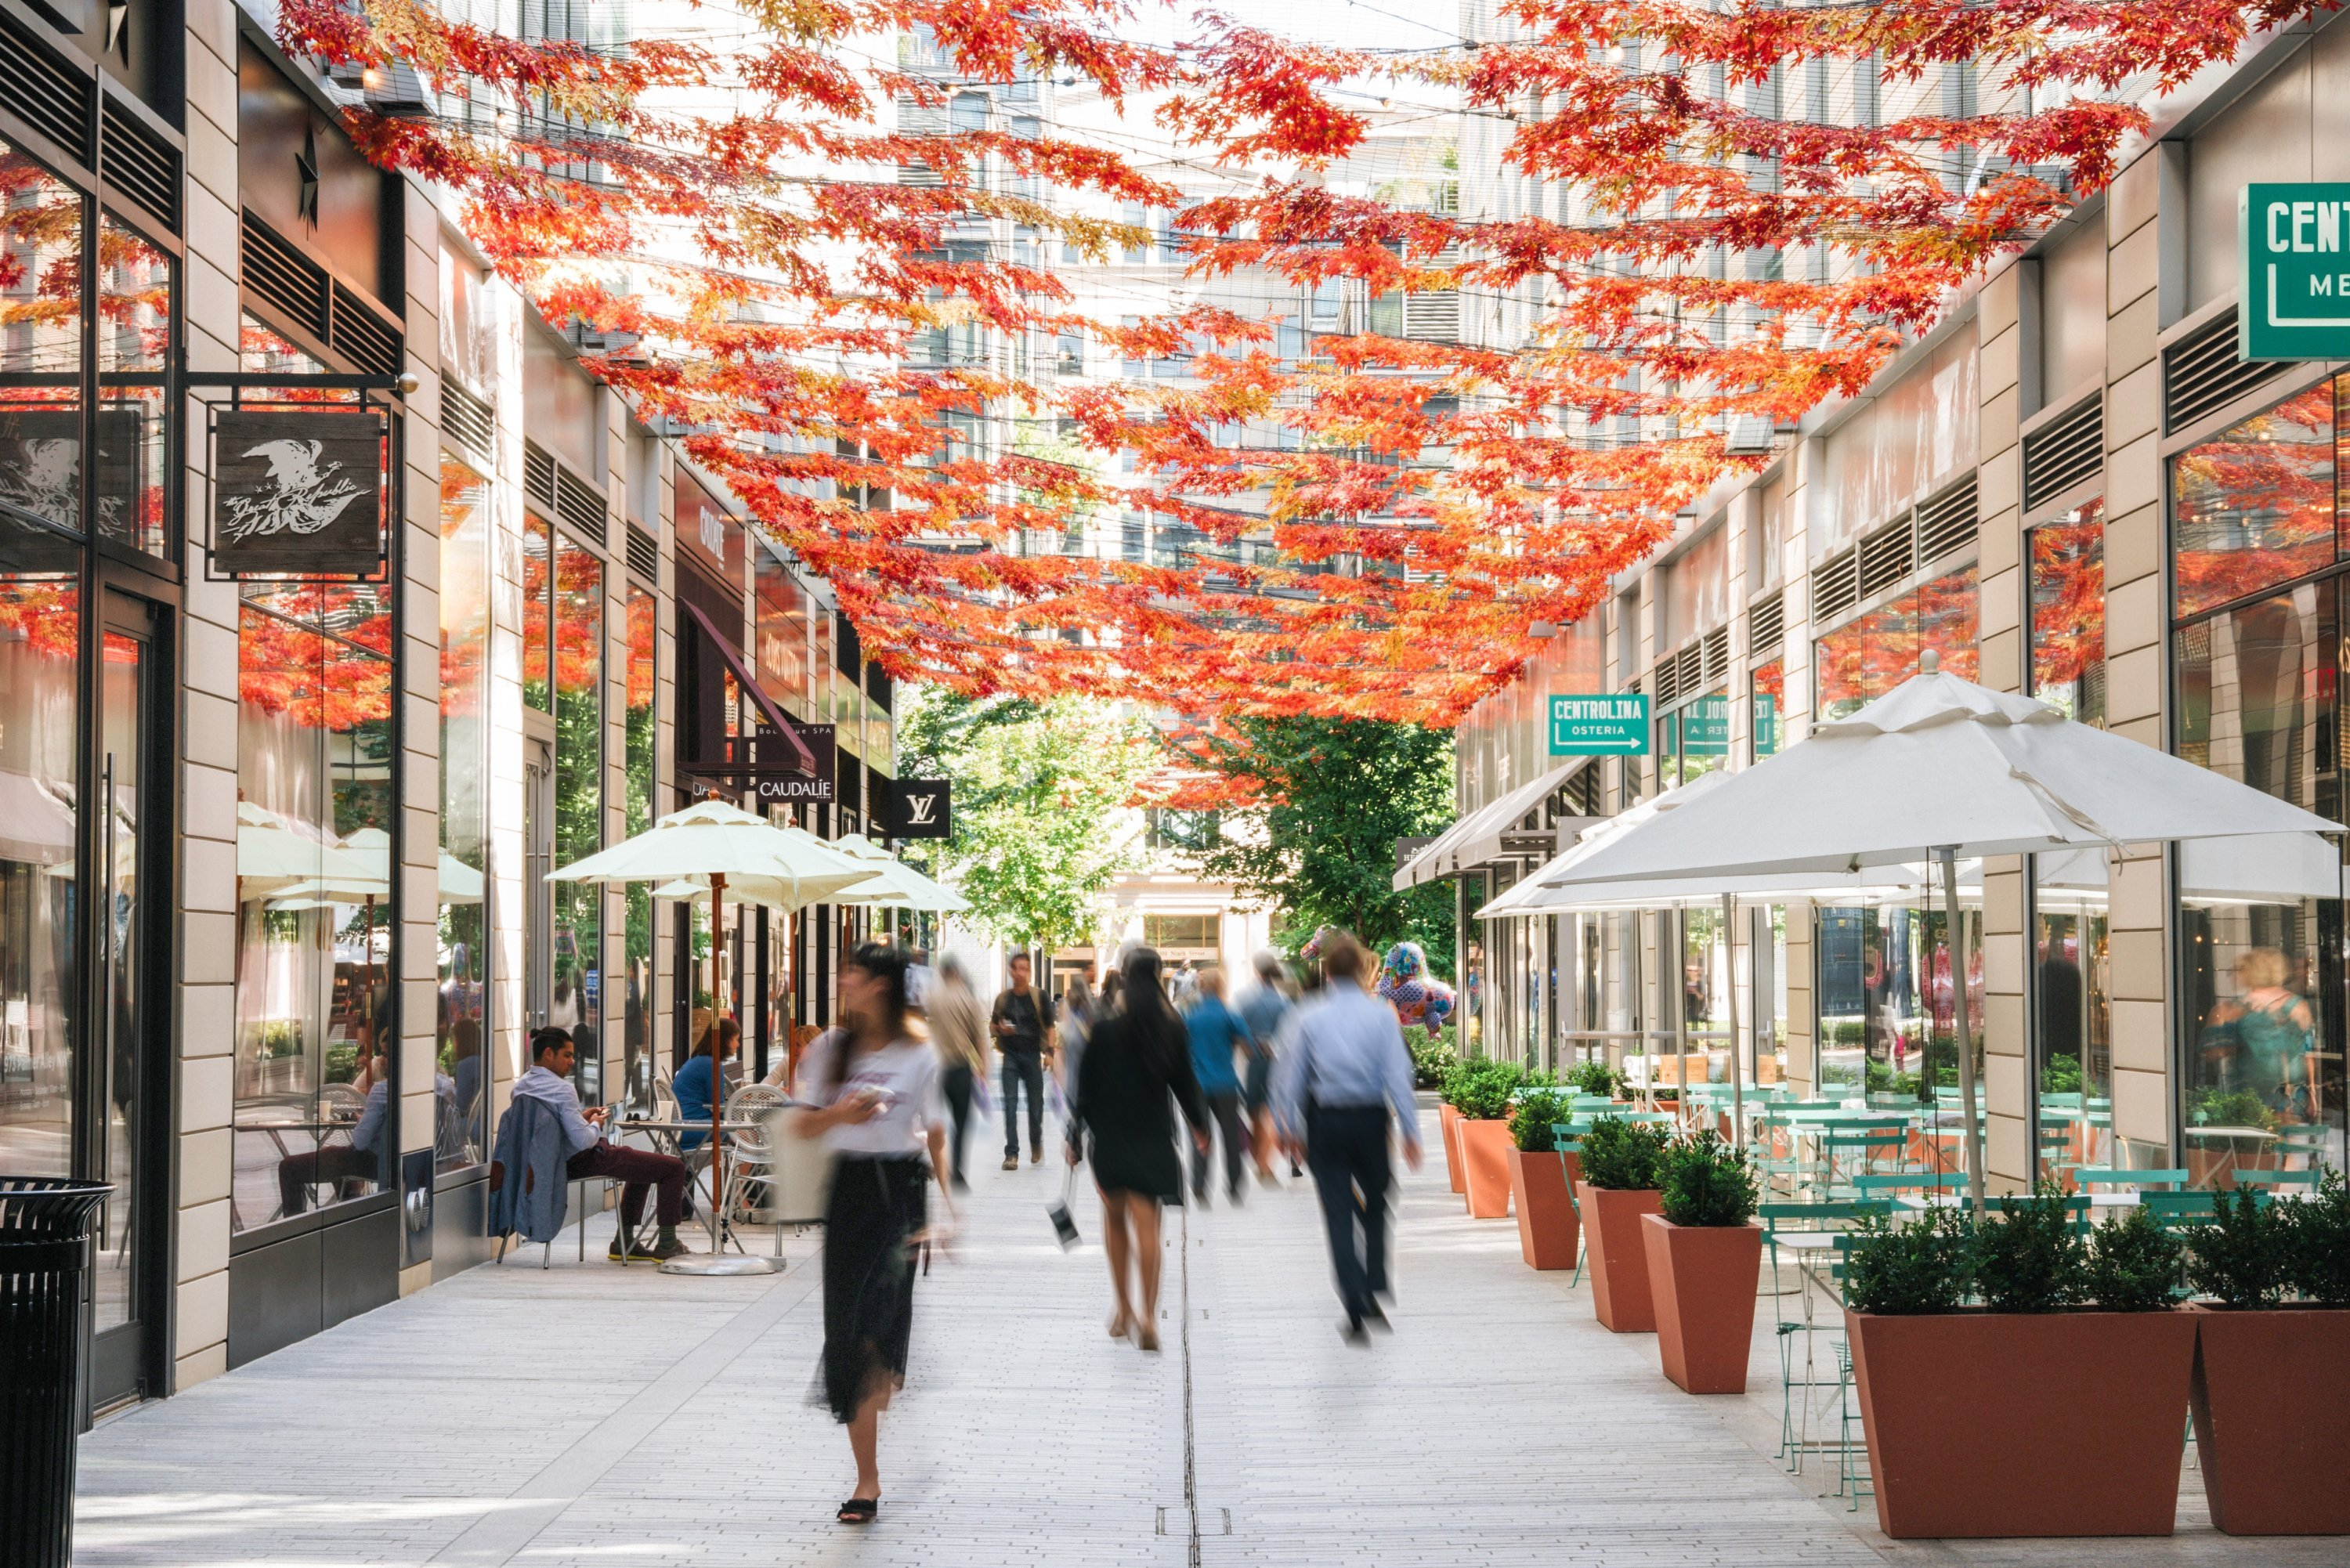 Five Reasons Why Visiting CityCenterDC Should Be at the Top of Your Fall To-Do List